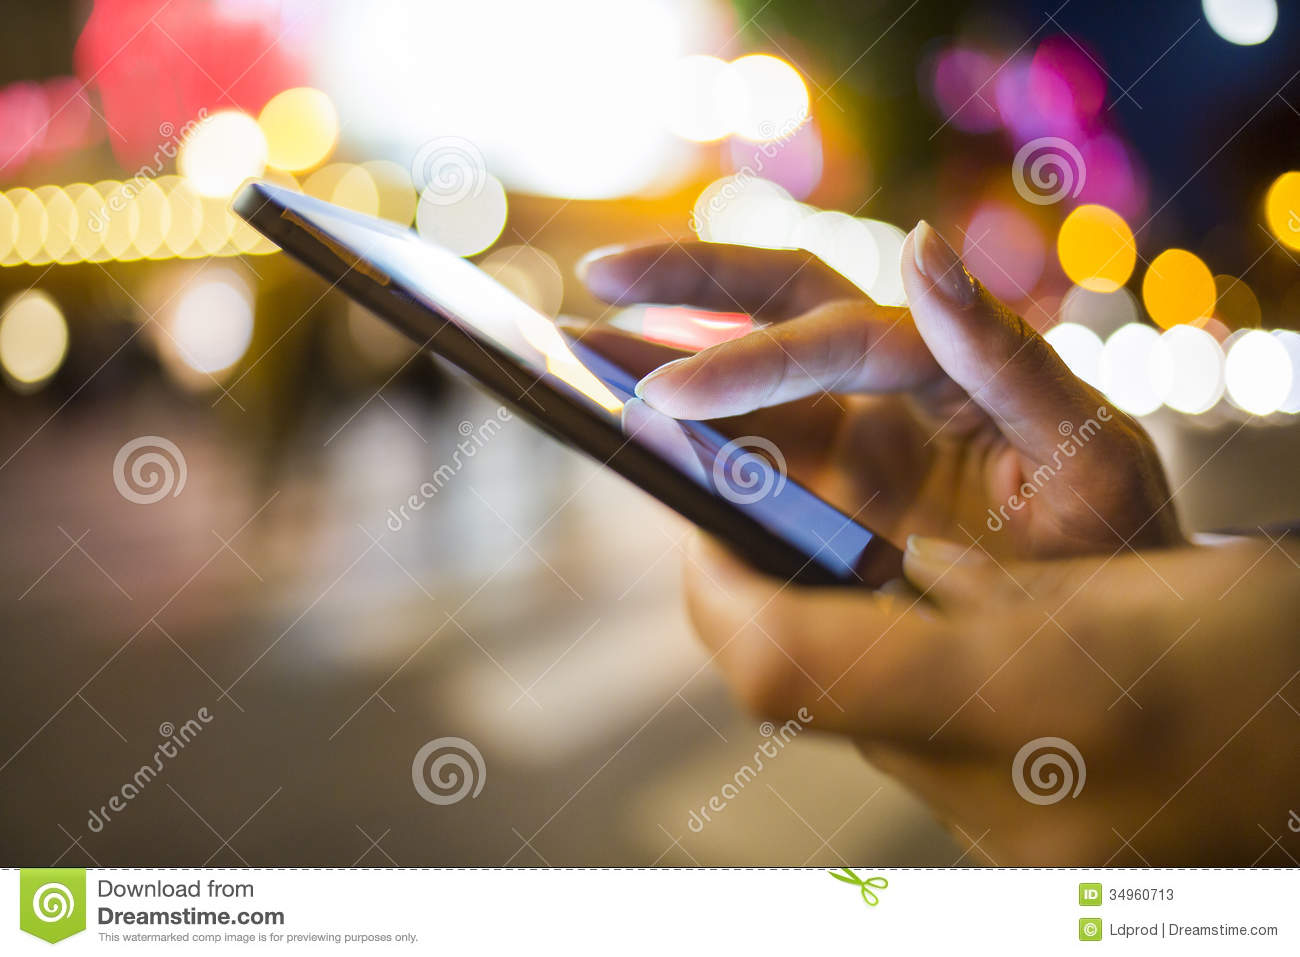 Woman using her Mobile Phone in the street, night light environm